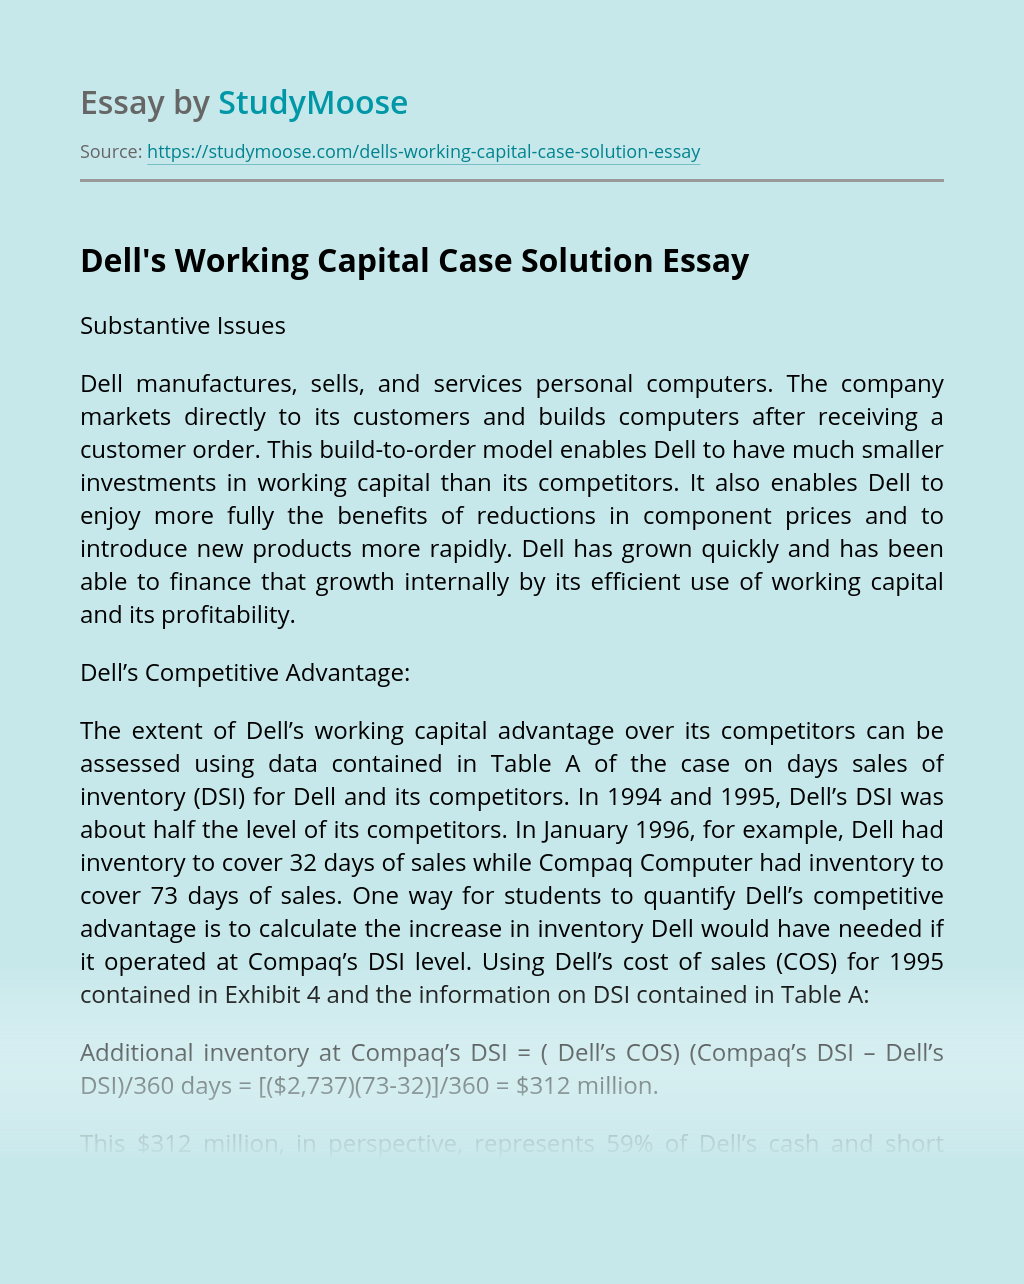 Dell's Working Capital Case Solution